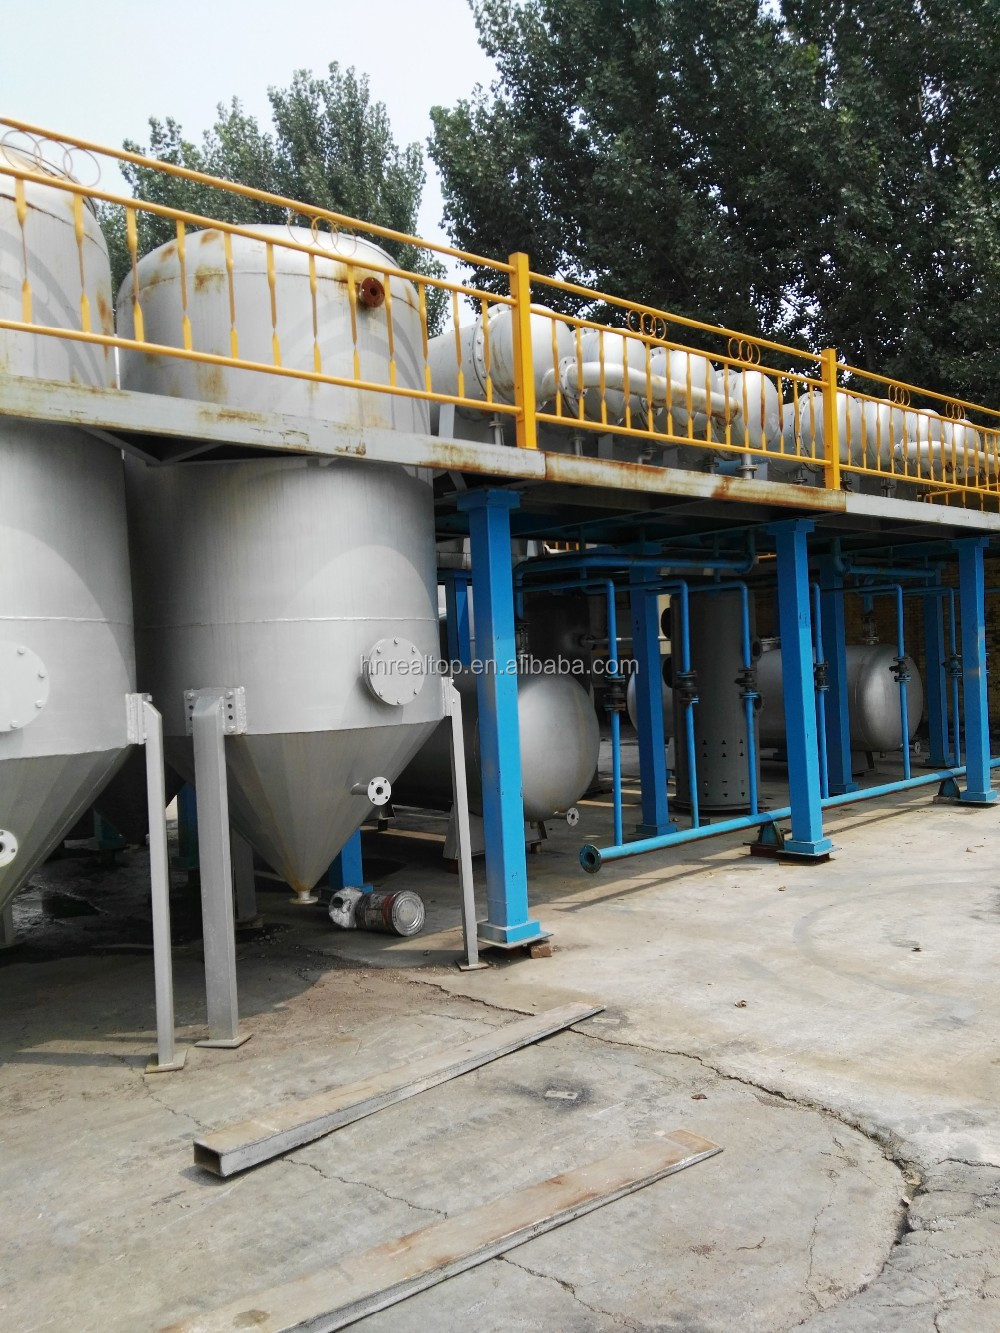 Latest technology Continuous pyrolysis oil distillation production line